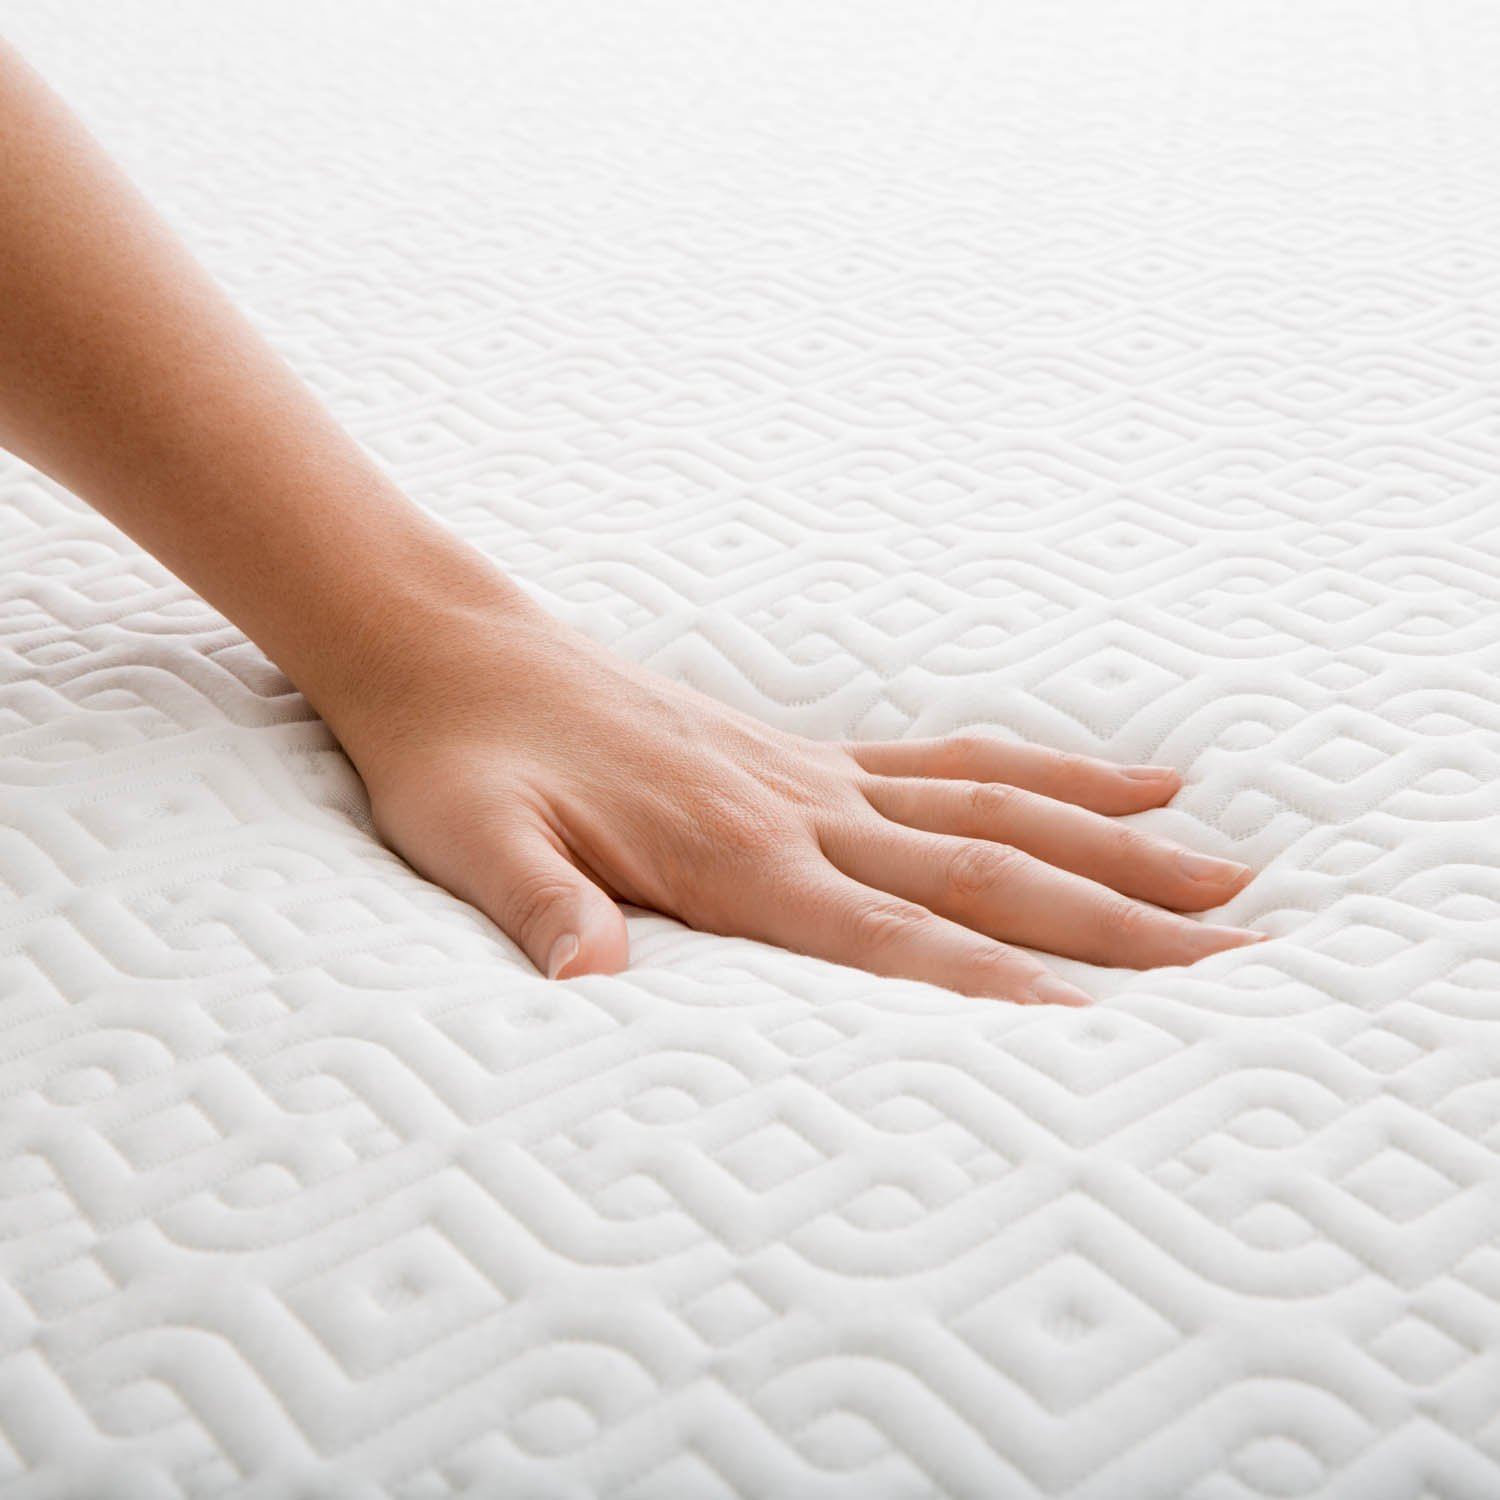 LUCID 5 Inch Gel Memory Foam Mattress - Dual-Layered - CertiPUR-US Certified - Firm Feel - Twin Size by LUCID